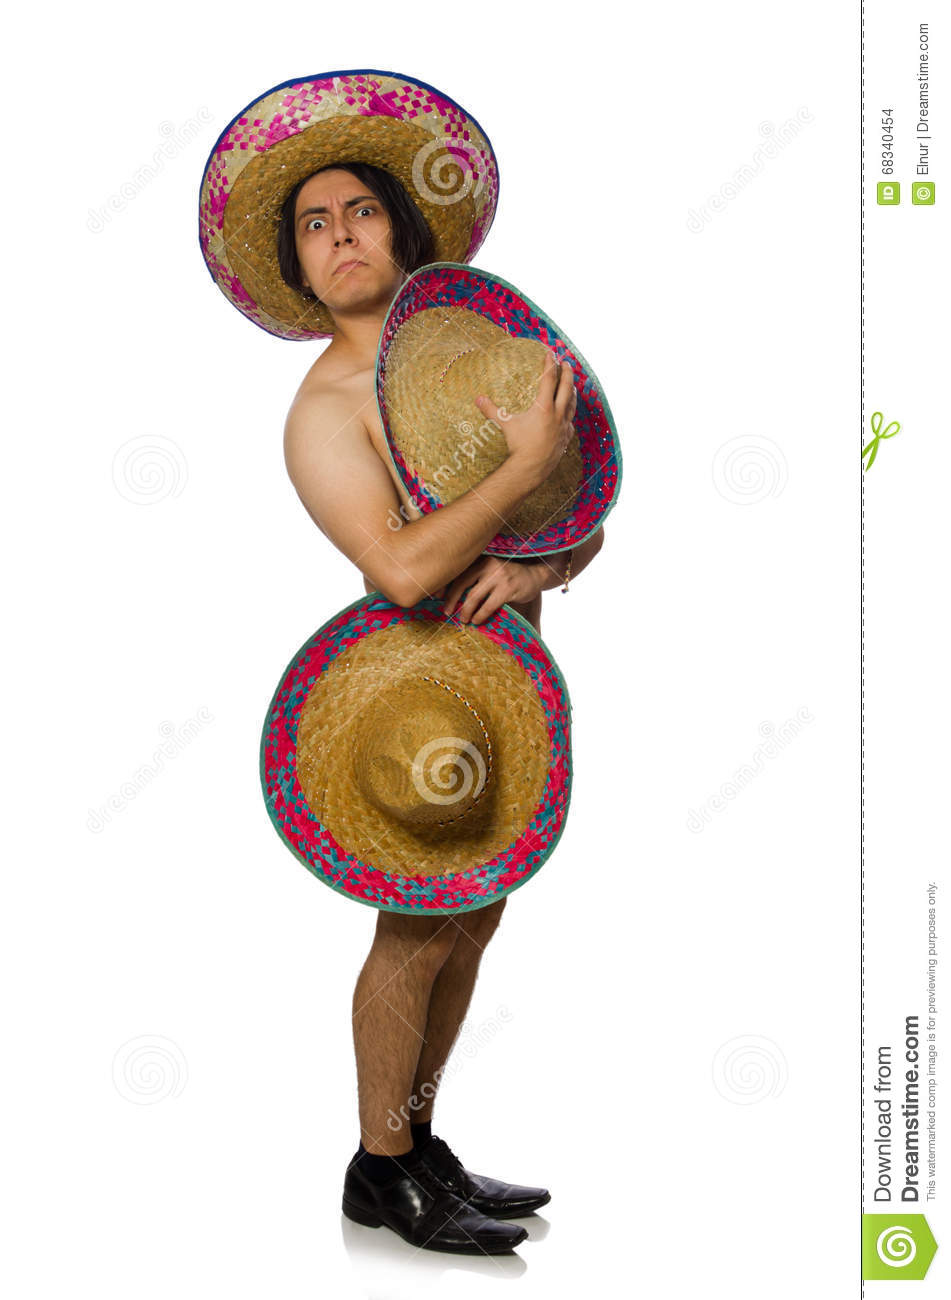 The naked mexican man isolated on white